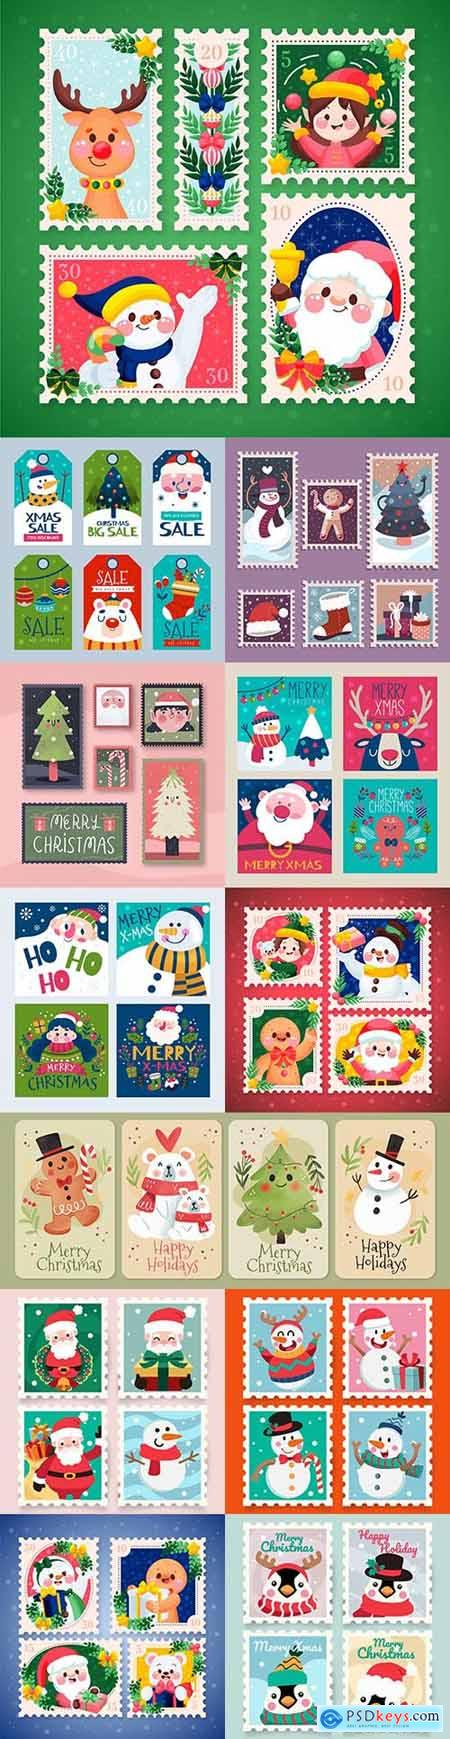 Christmas stamps and postcards flat design collection painted 4